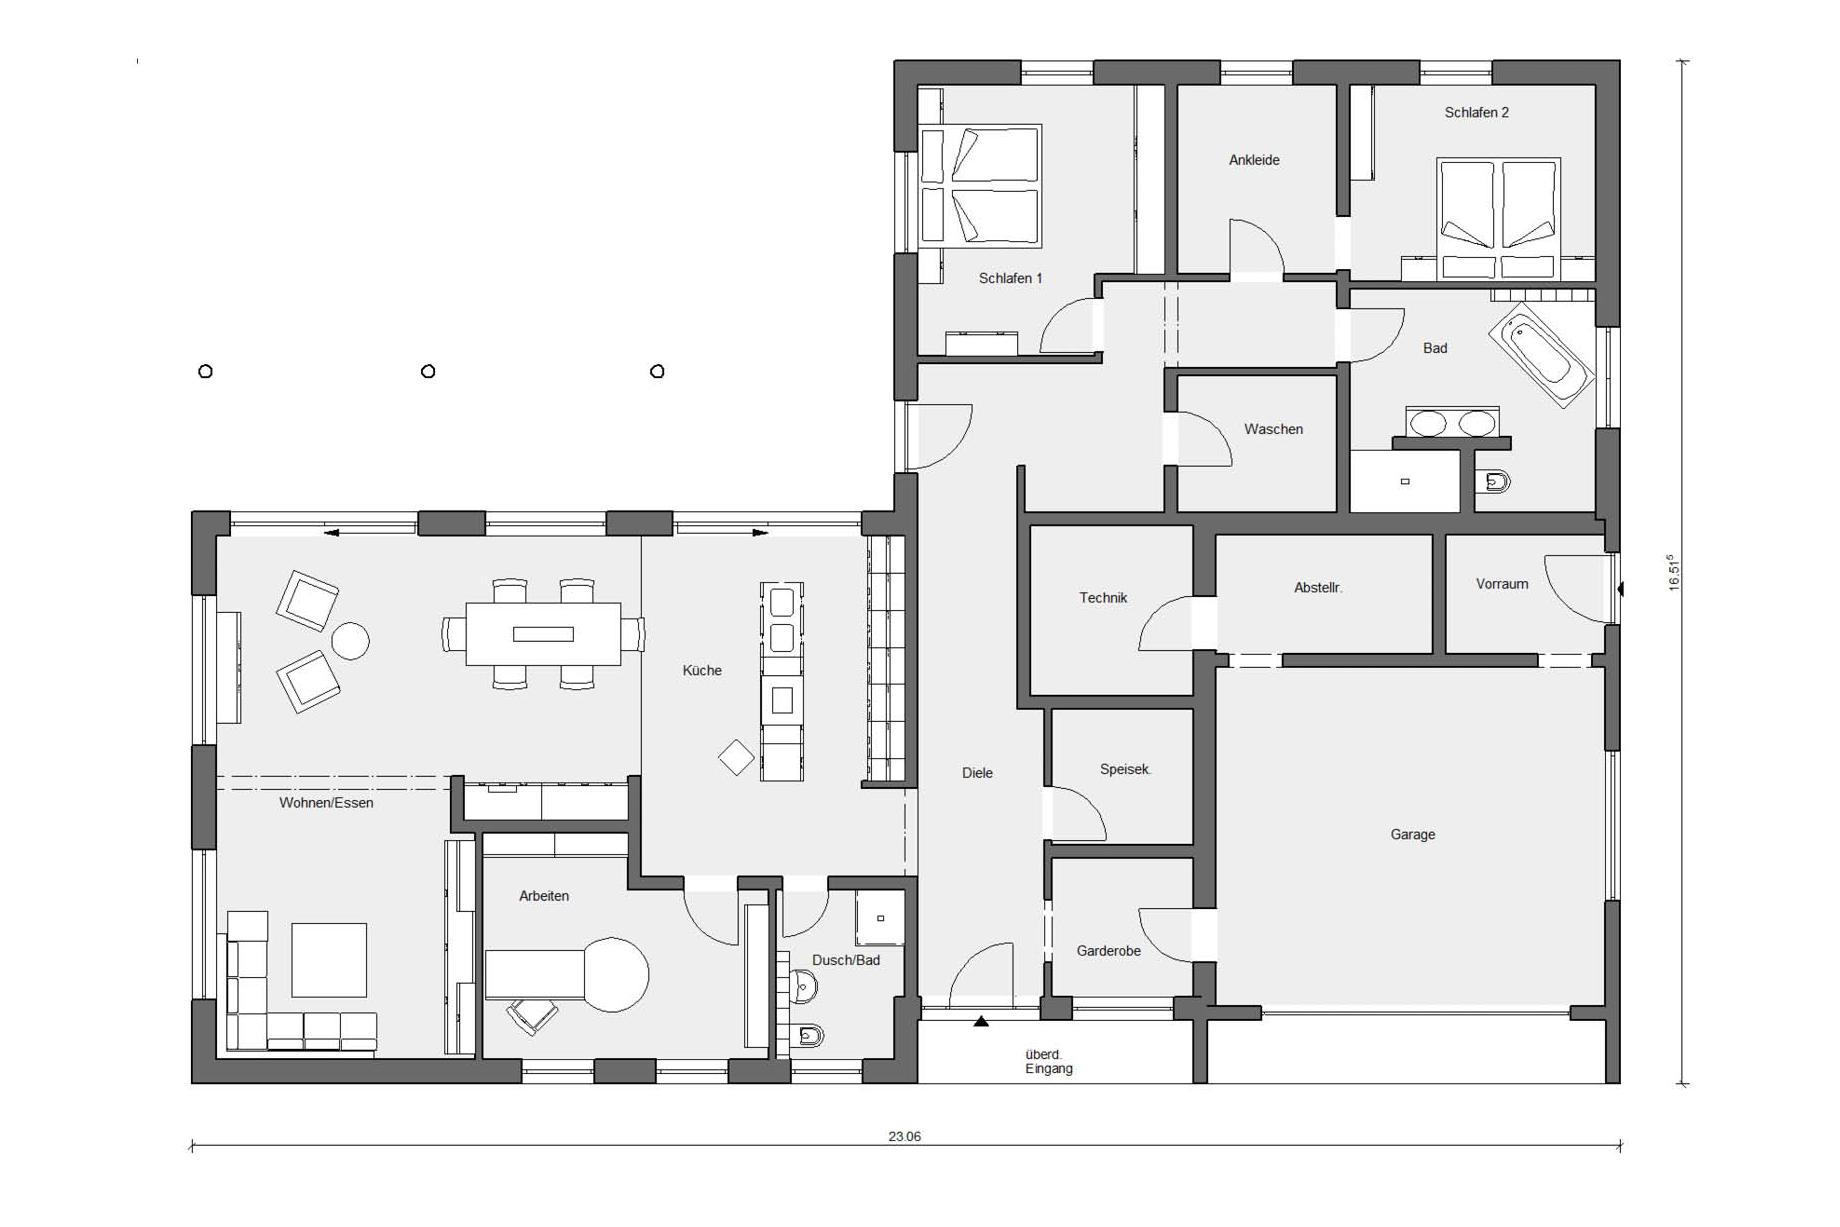 Ground floor plan E 10-206.1 Bungalow in L-shape